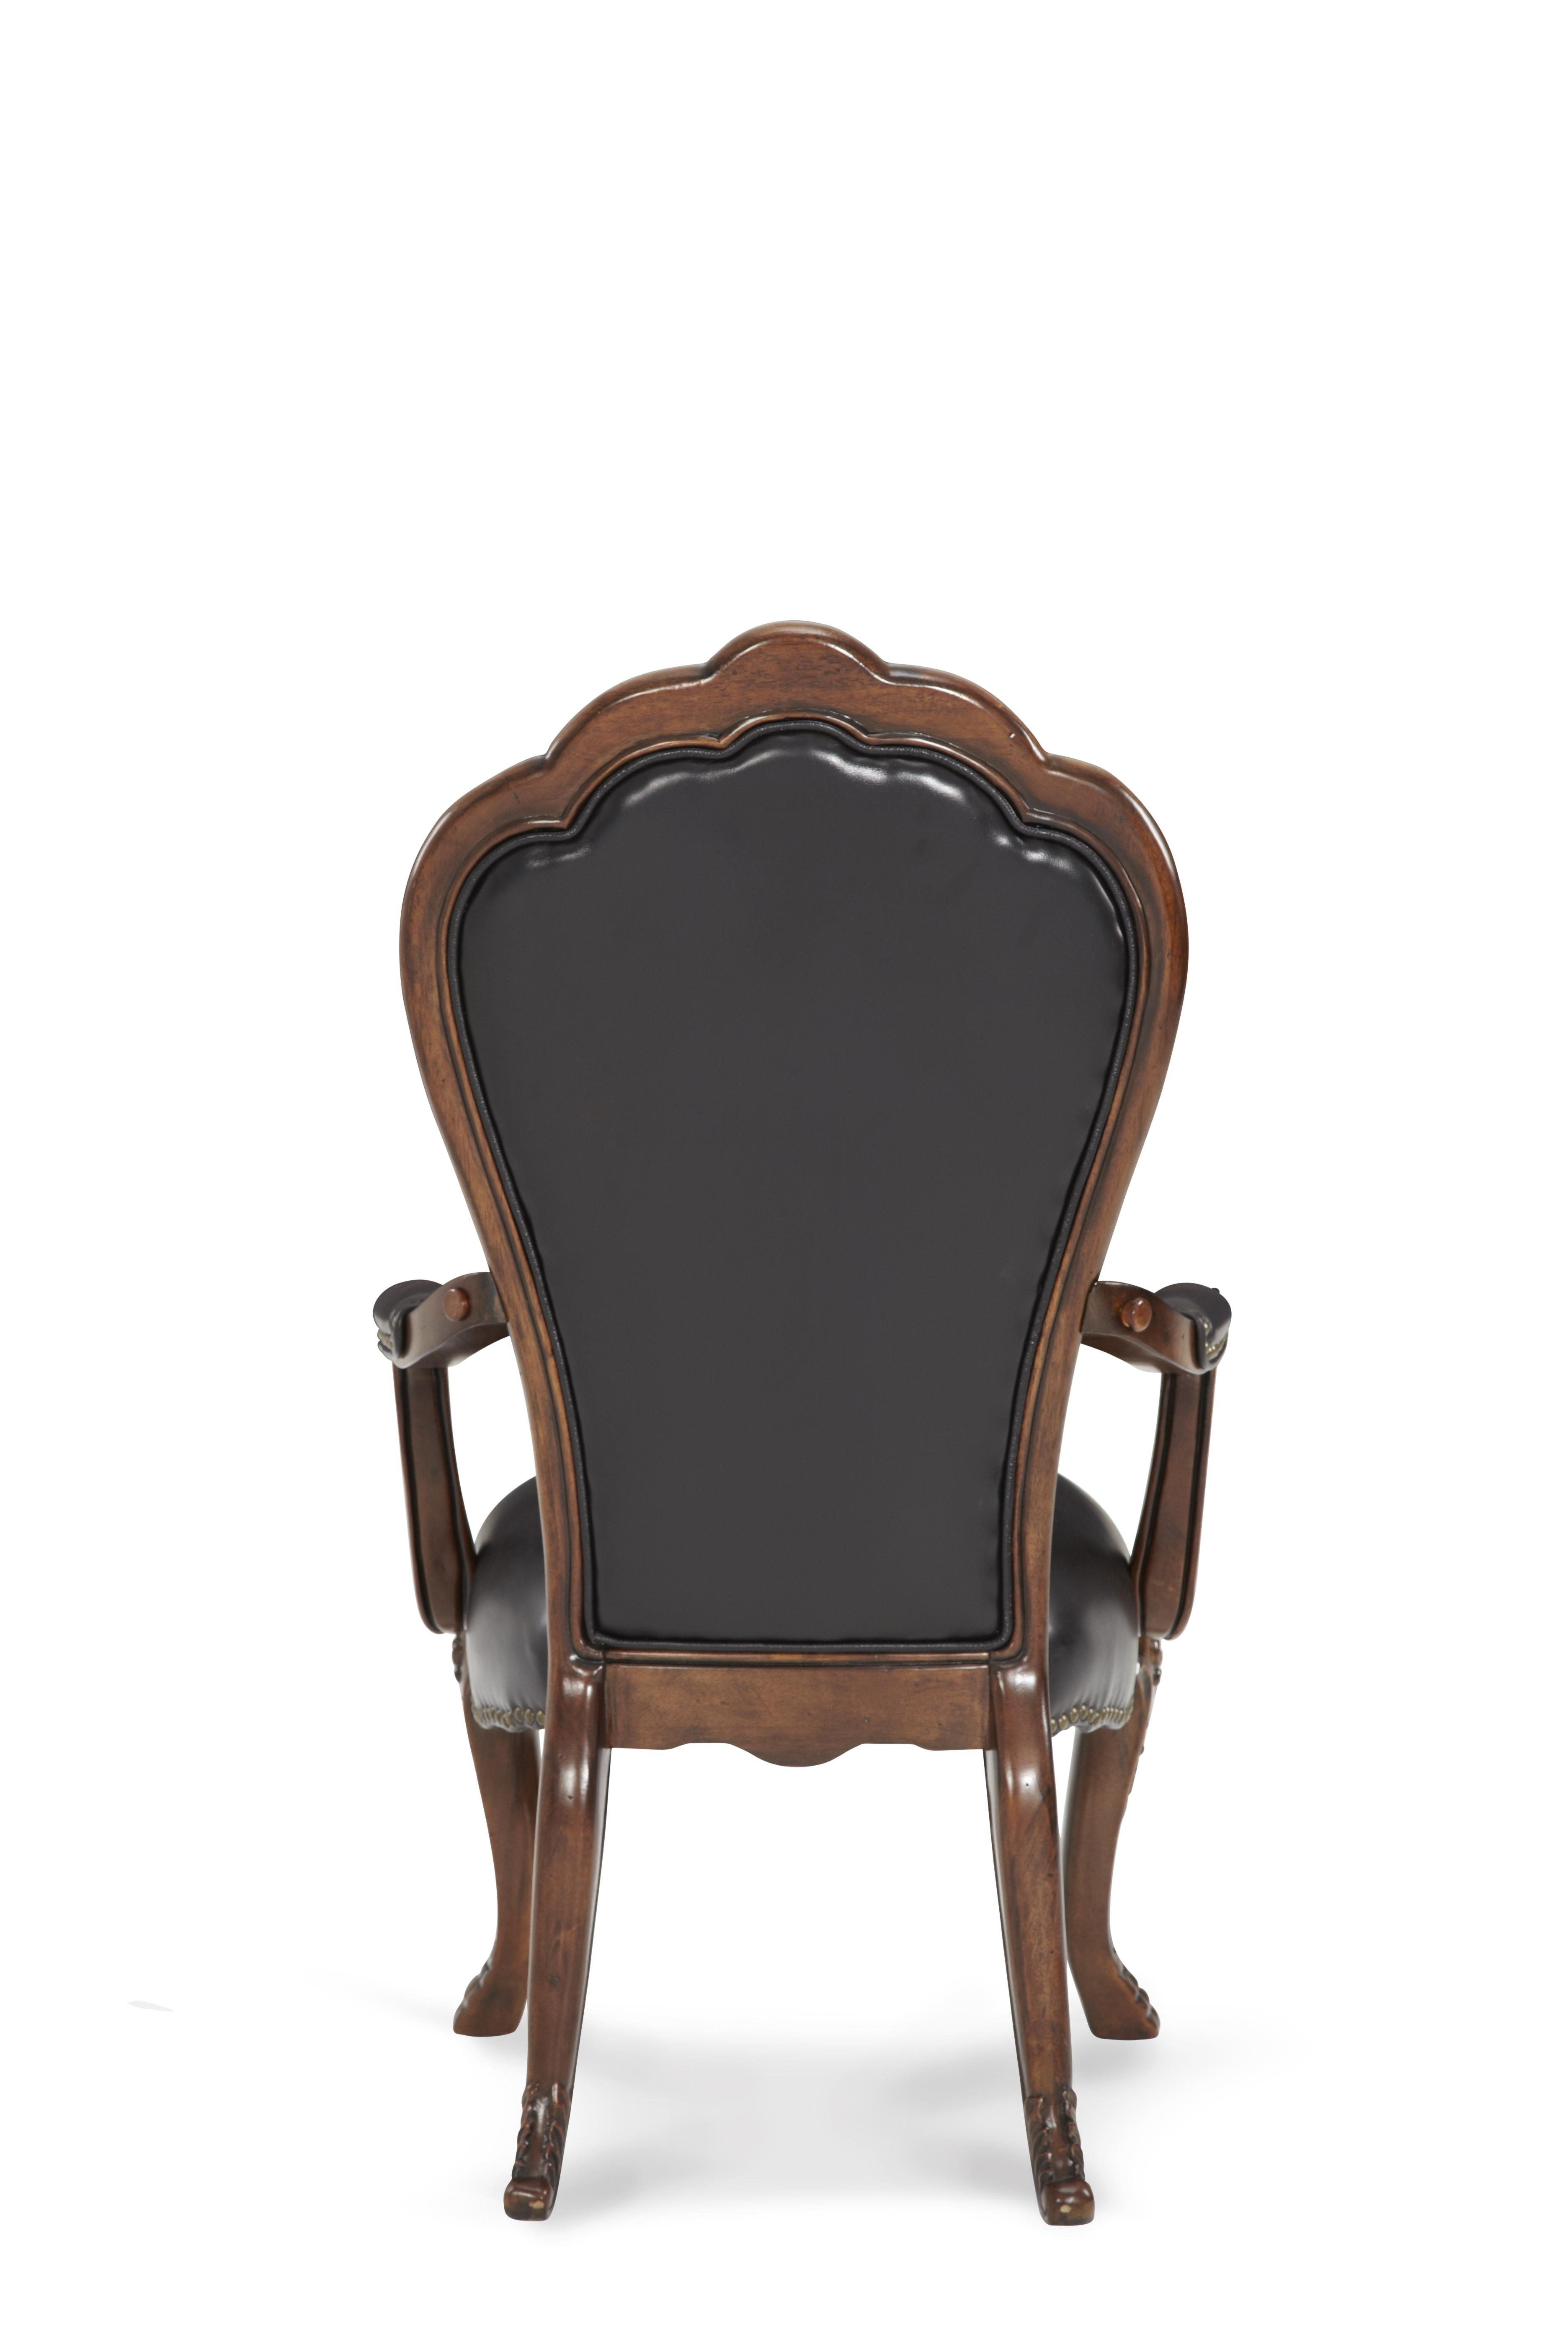 Amazing Aico Furniture Palace Gates Arm Chair   Leather 02444A 53